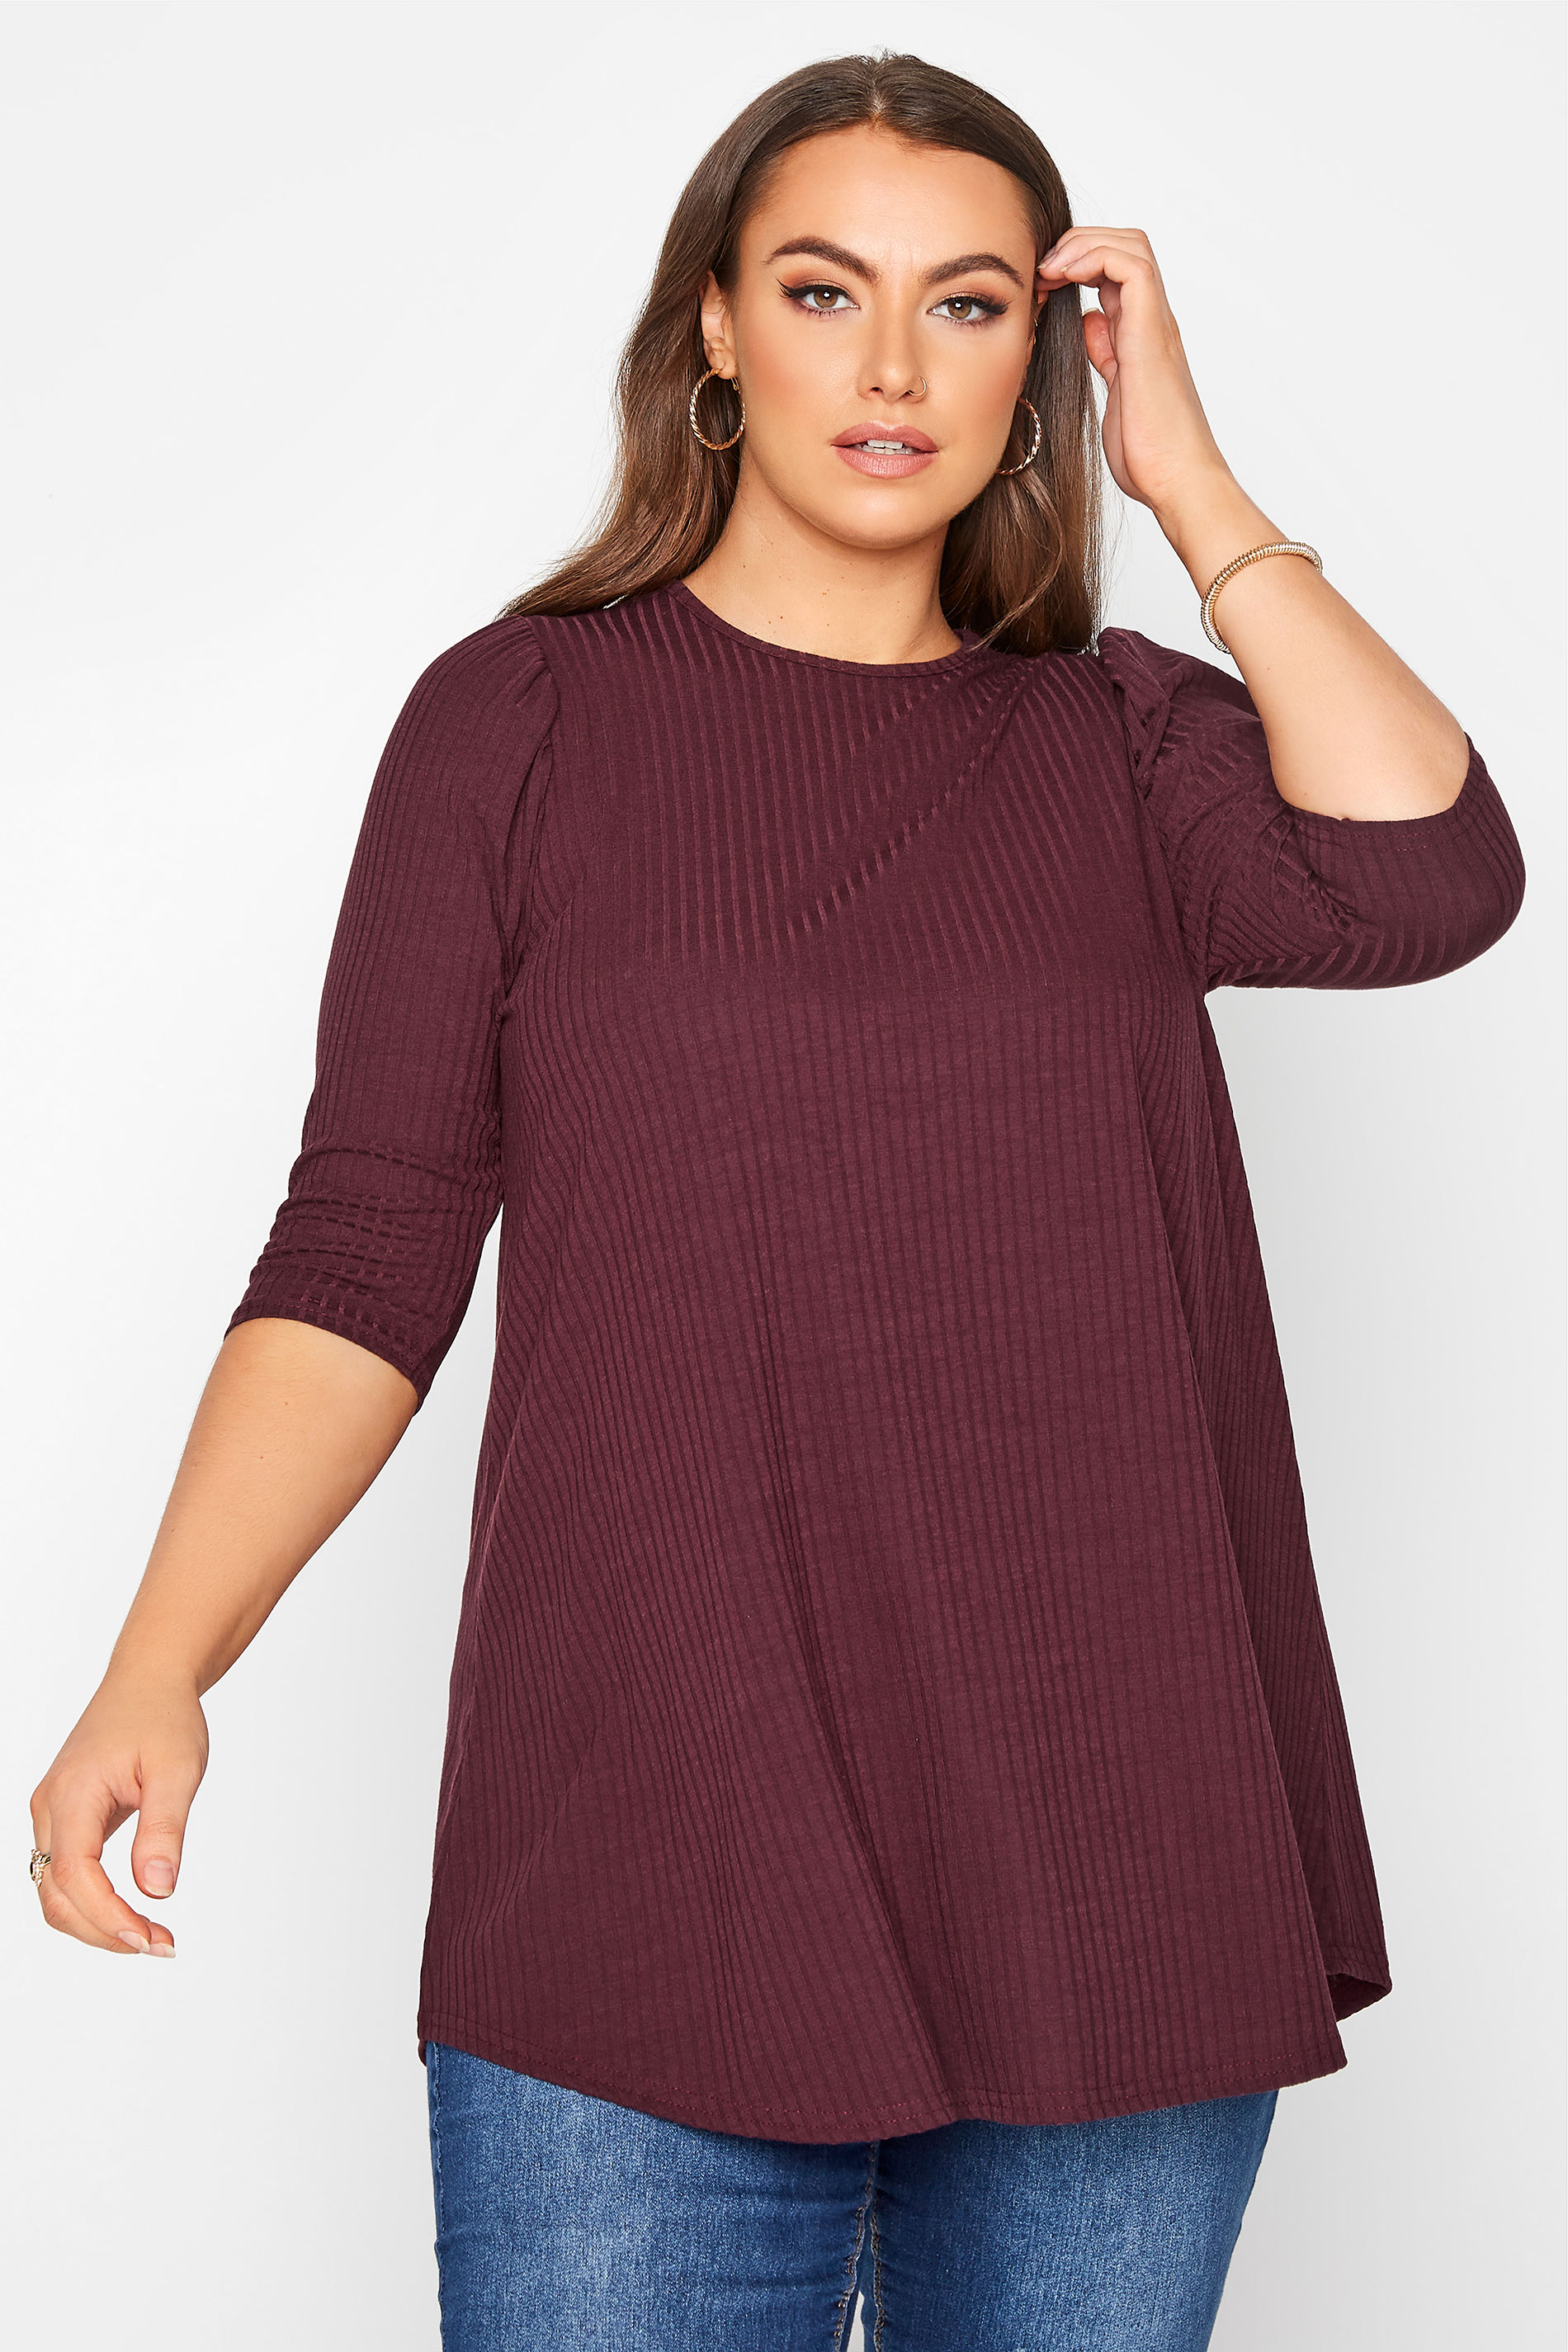 LIMITED COLLECTION Berry Purple Puff Sleeve Ribbed Top_A.jpg